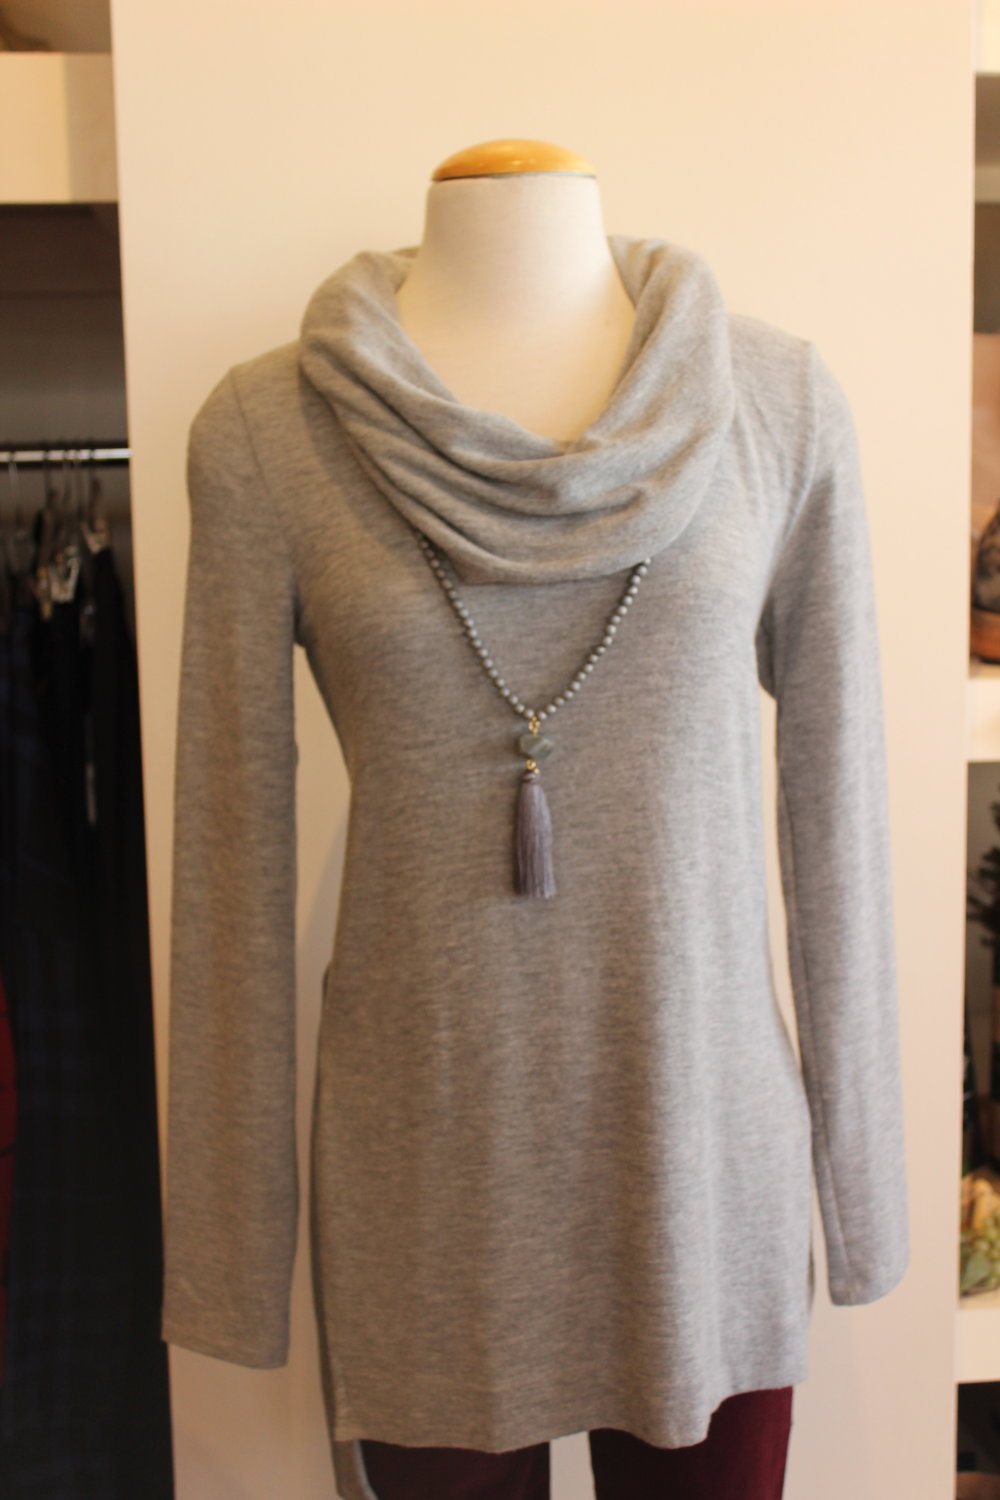 This Michael Stars cowl neck sweater is always a best seller! Made in the USA, the brushed jersey material makes it so soft and cozy! Perfect gift for any age or size. Colors: Heather grey, light pink, and oatmeal.